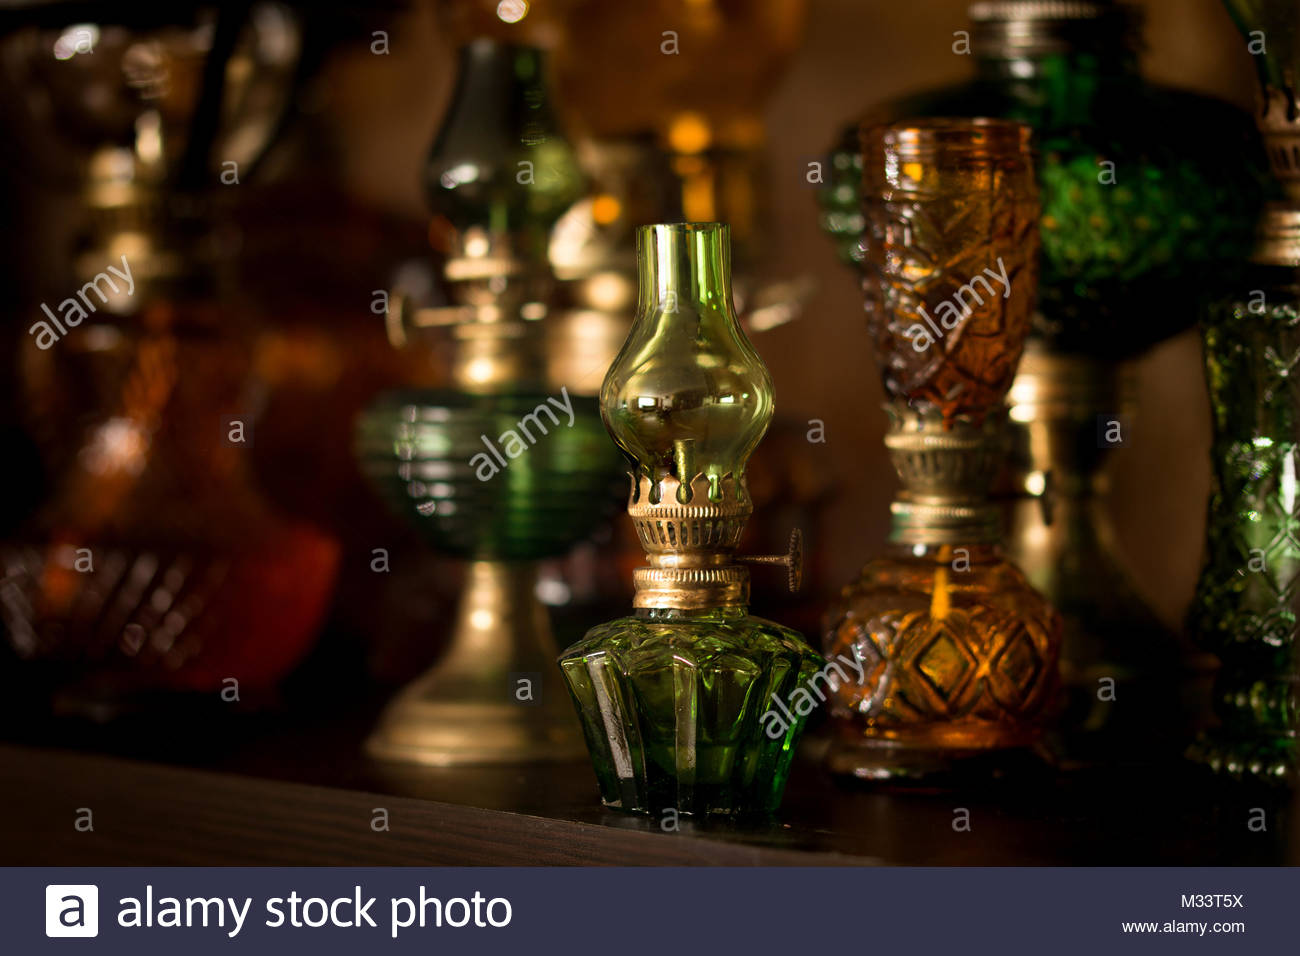 Small green kerosene lamp on background of other lamps - Stock Image